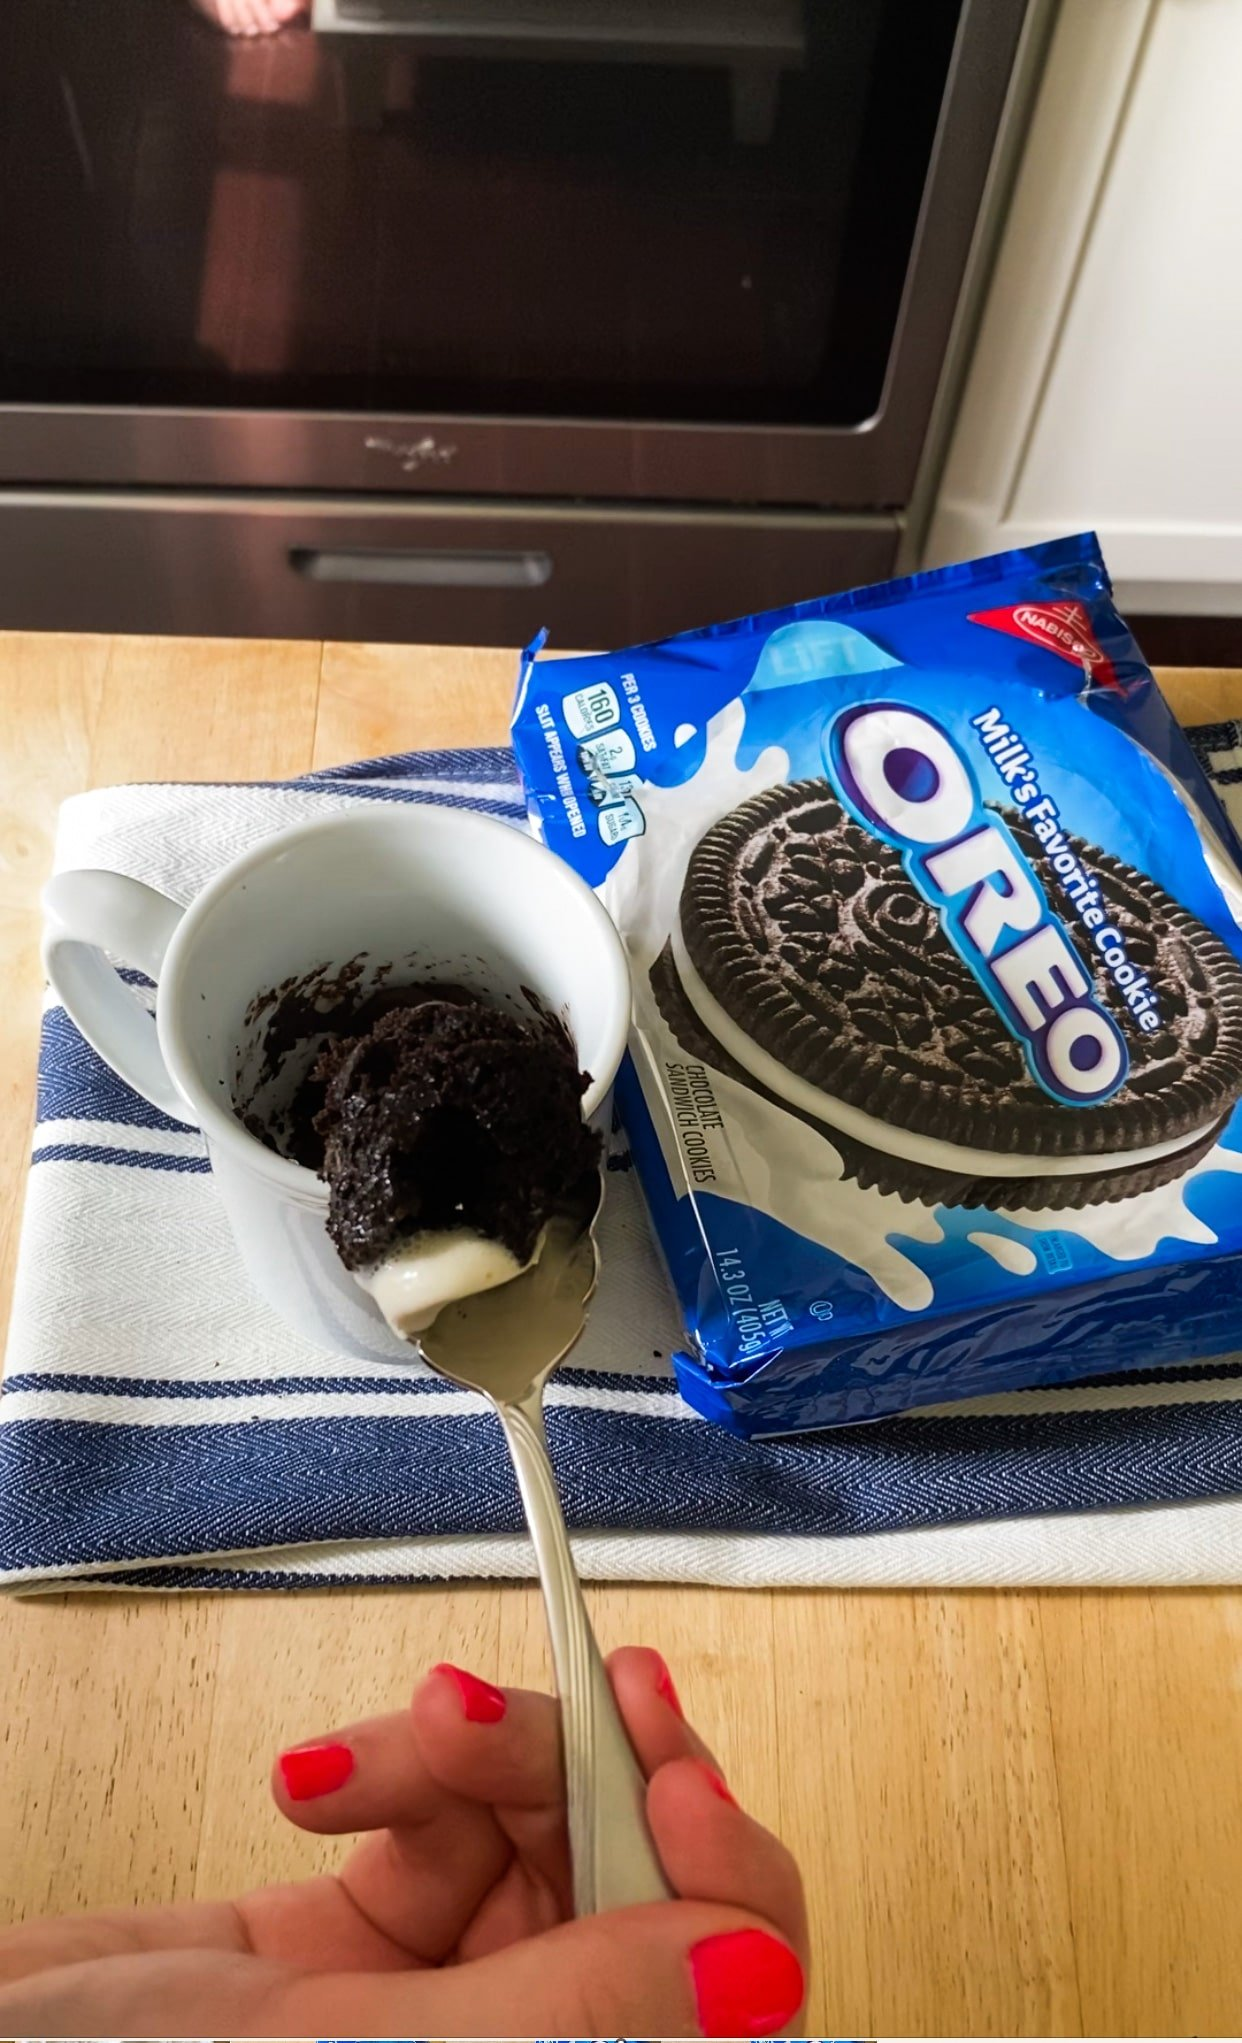 This Viral Oreo Mug Cake Recipe From Tiktok Is The Bomb You Only Need 2 Ingredients